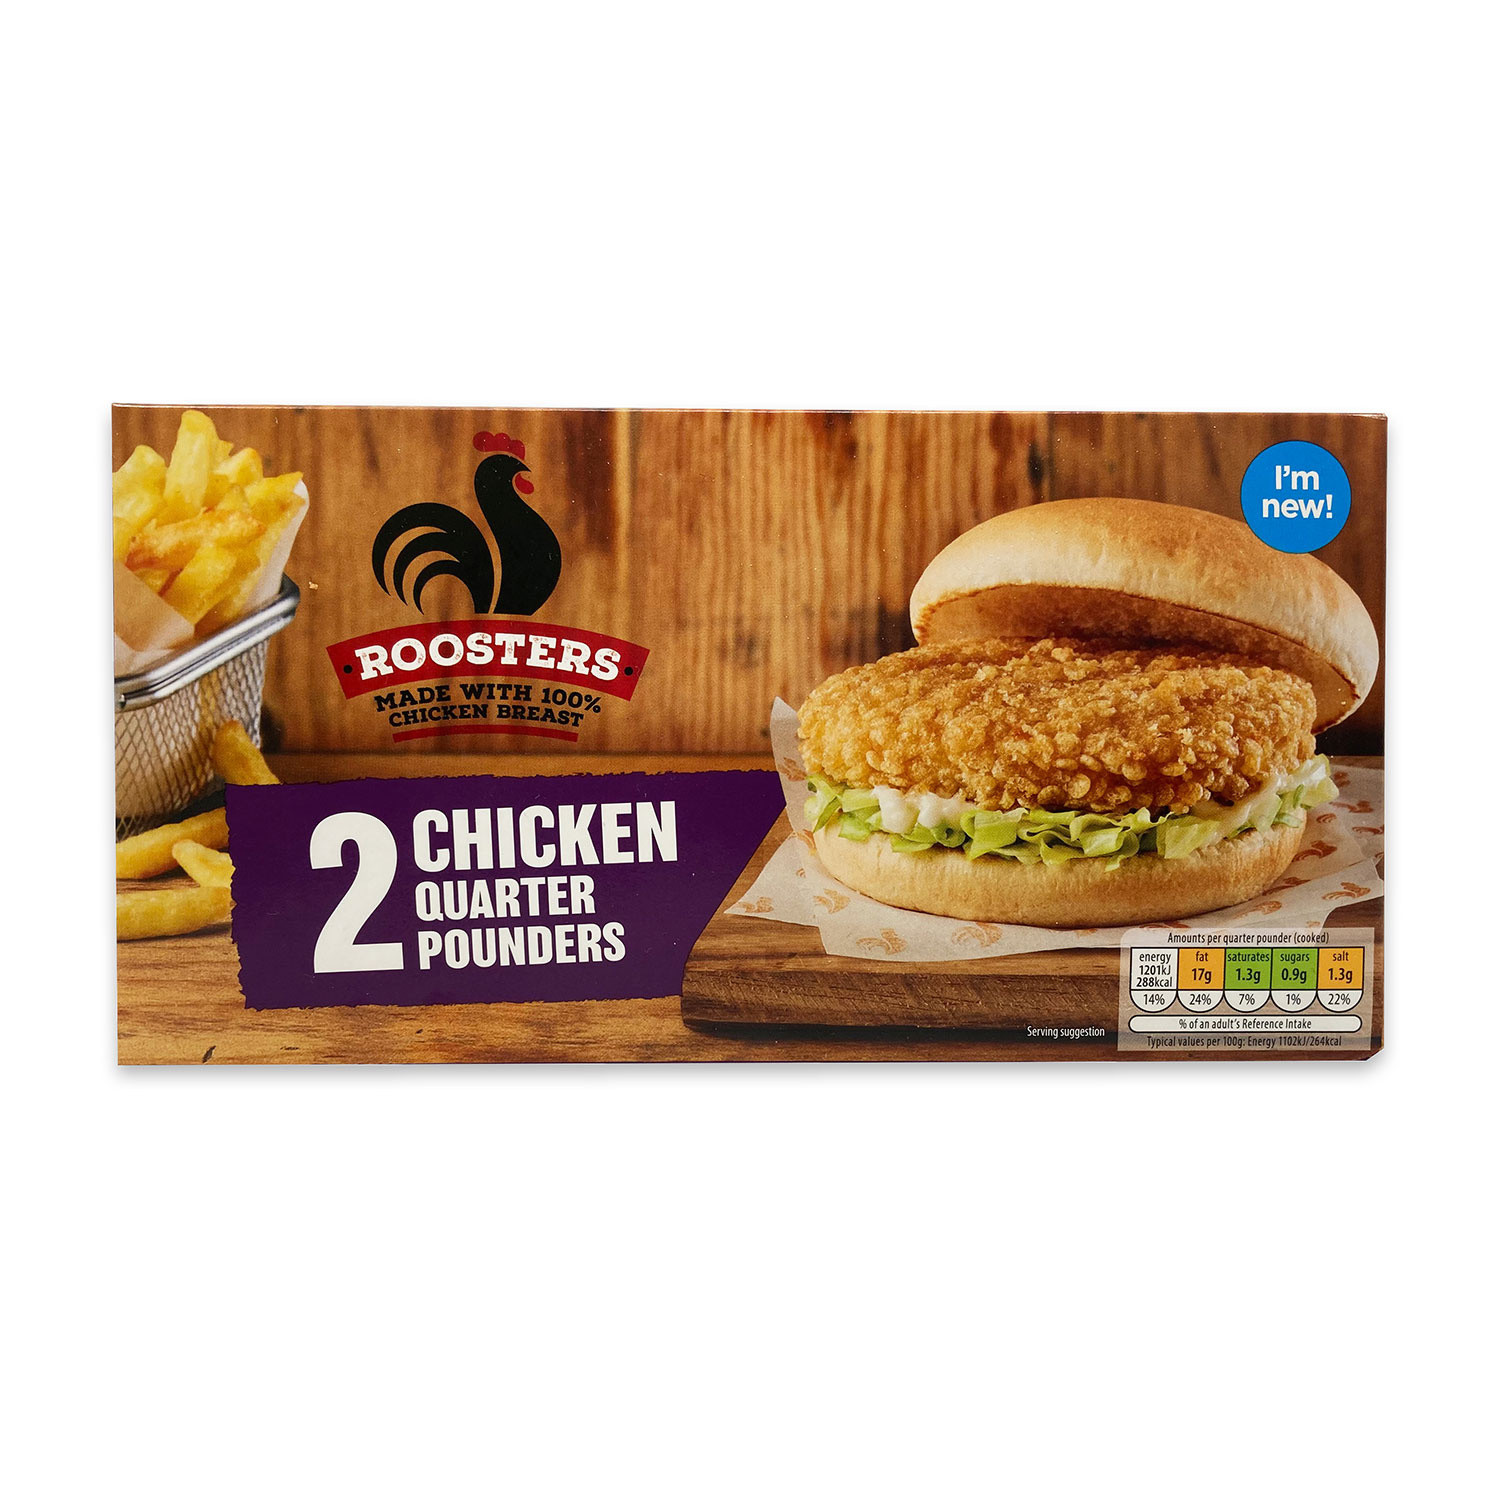 2 Chicken Quarter Pounders